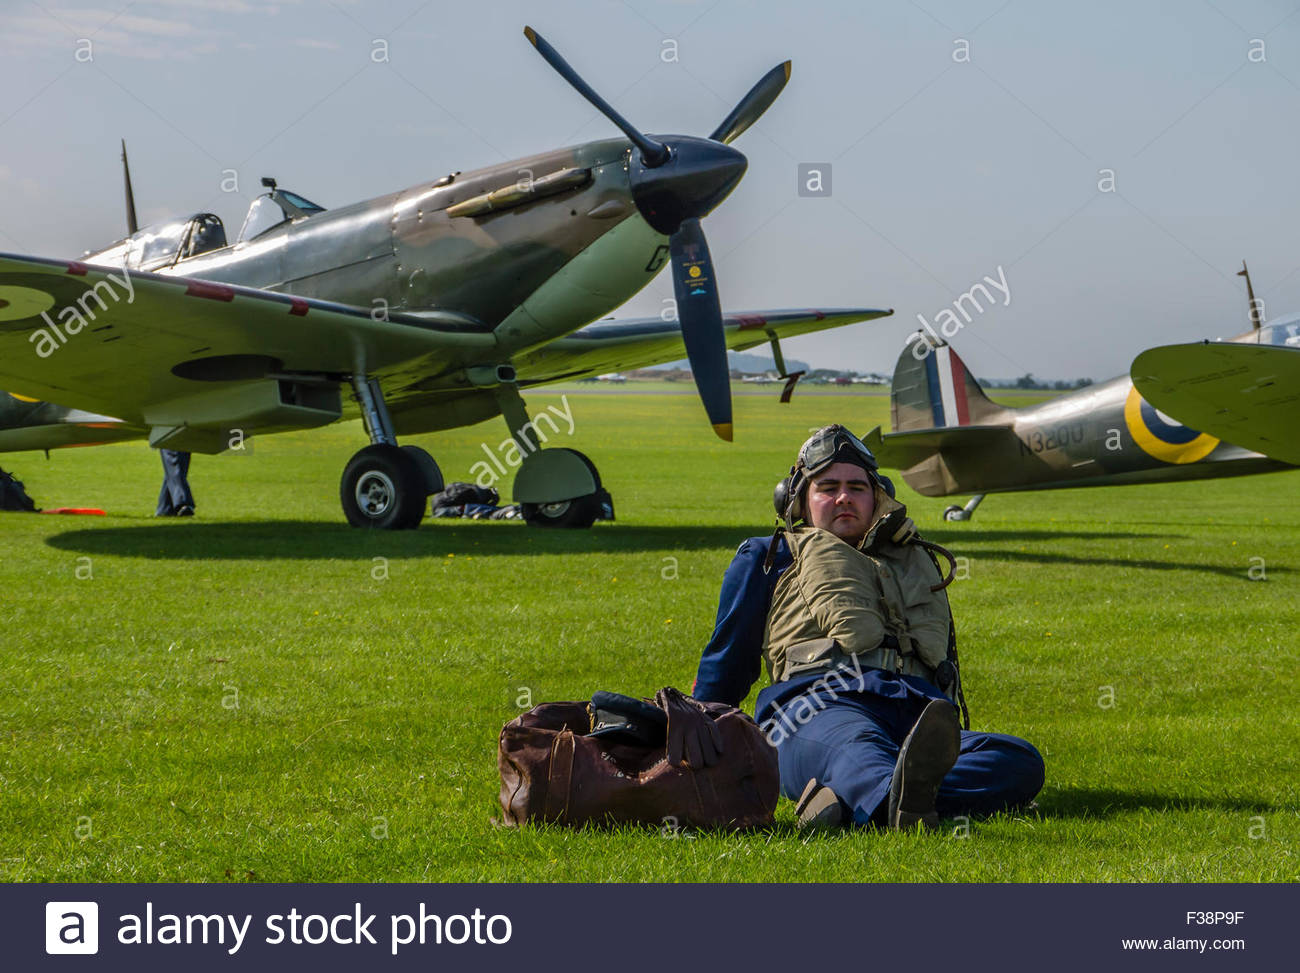 Duxford Battle of Britain 2015 Spitfire Pilot  waiting order to Scramble 1940's - Stock Image